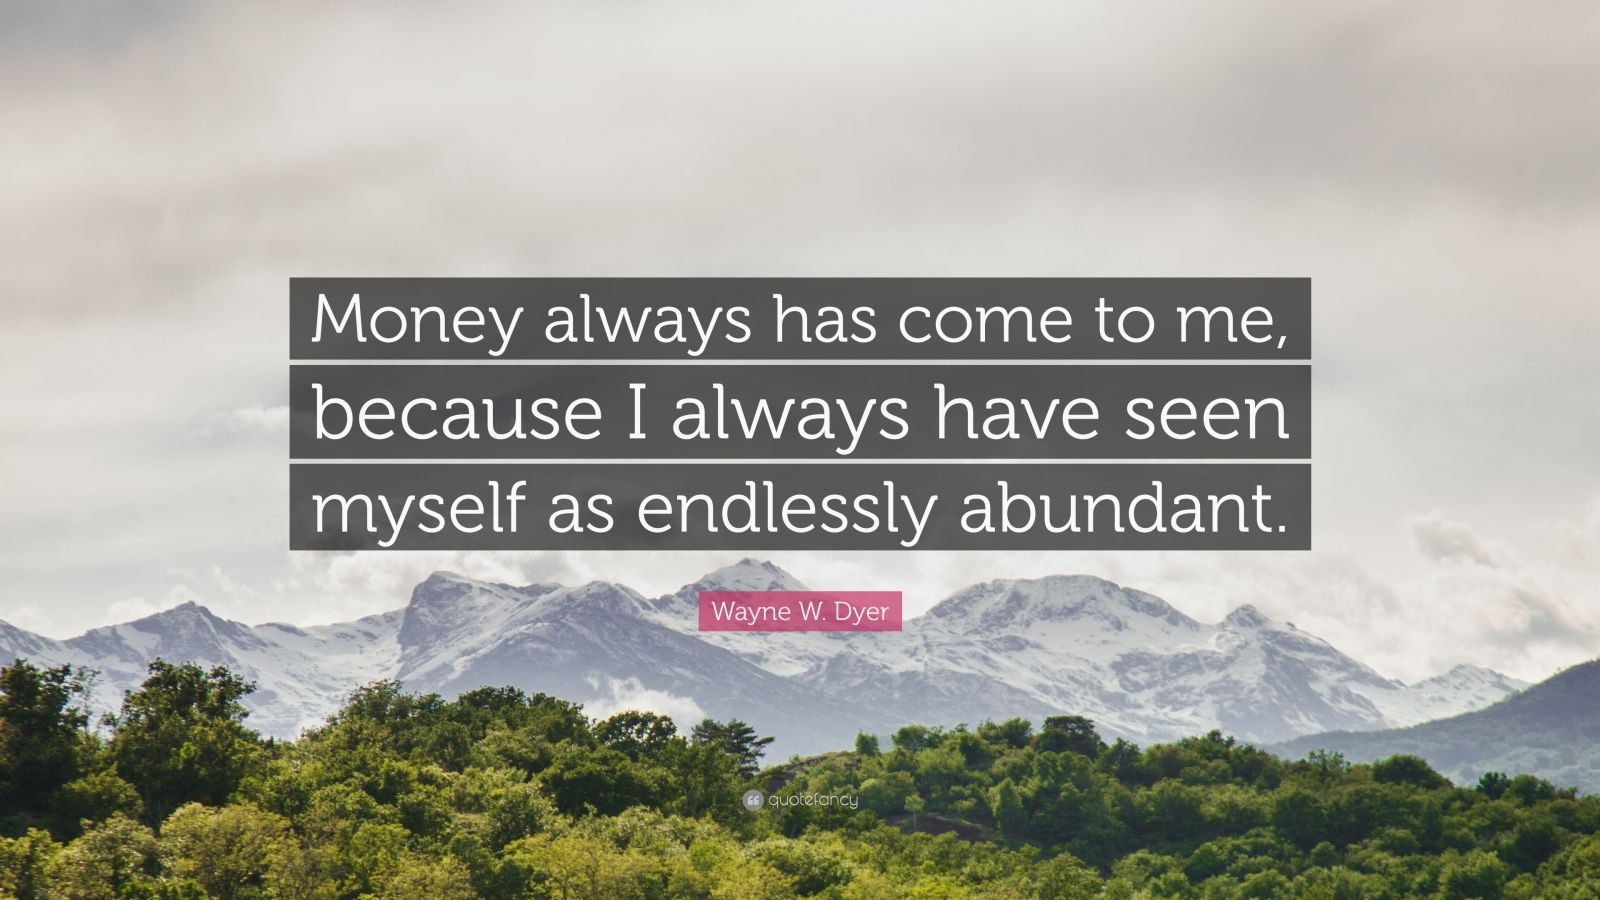 """Wayne W. Dyer Quote: """"Money always has come to me, because I always have seen myself as endlessly abundant."""""""